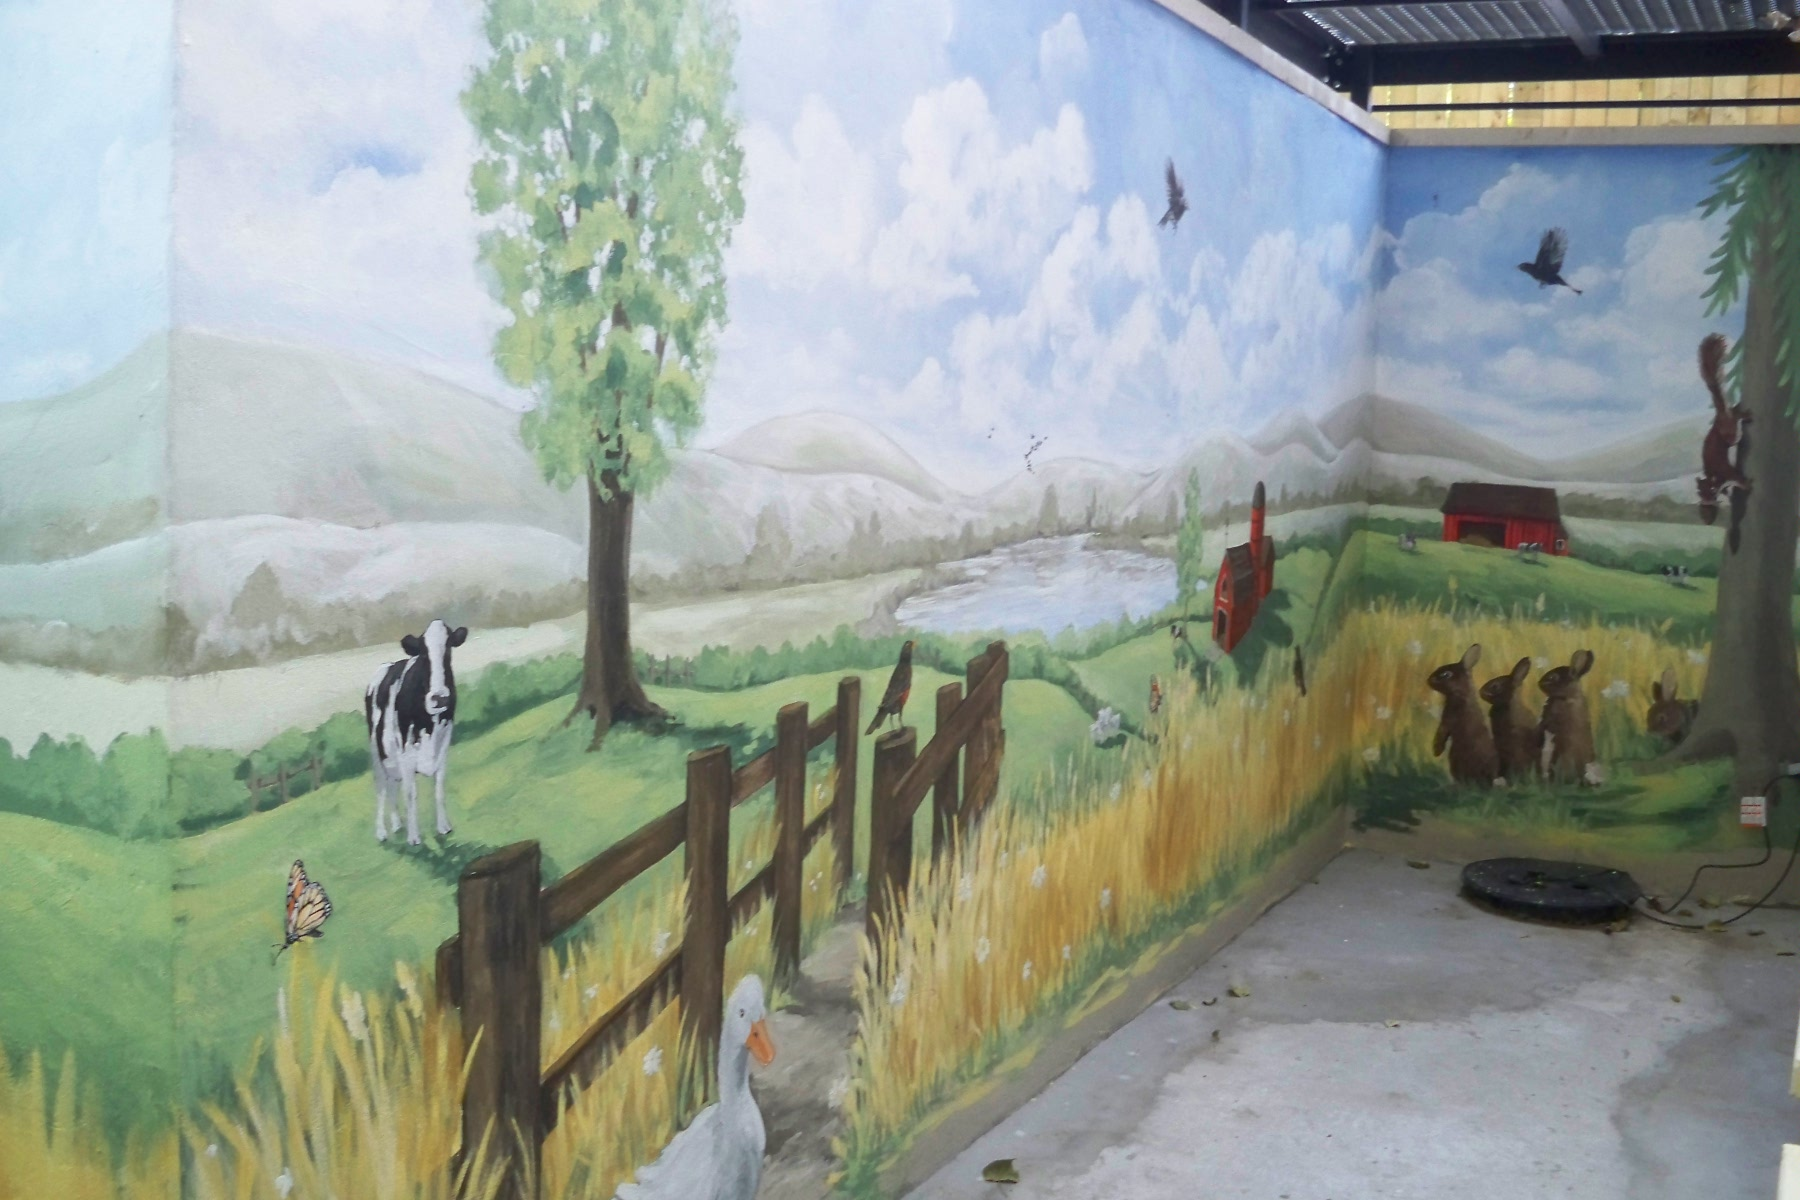 Murals By Marg TBA Farm Murals 2009 8.jpg